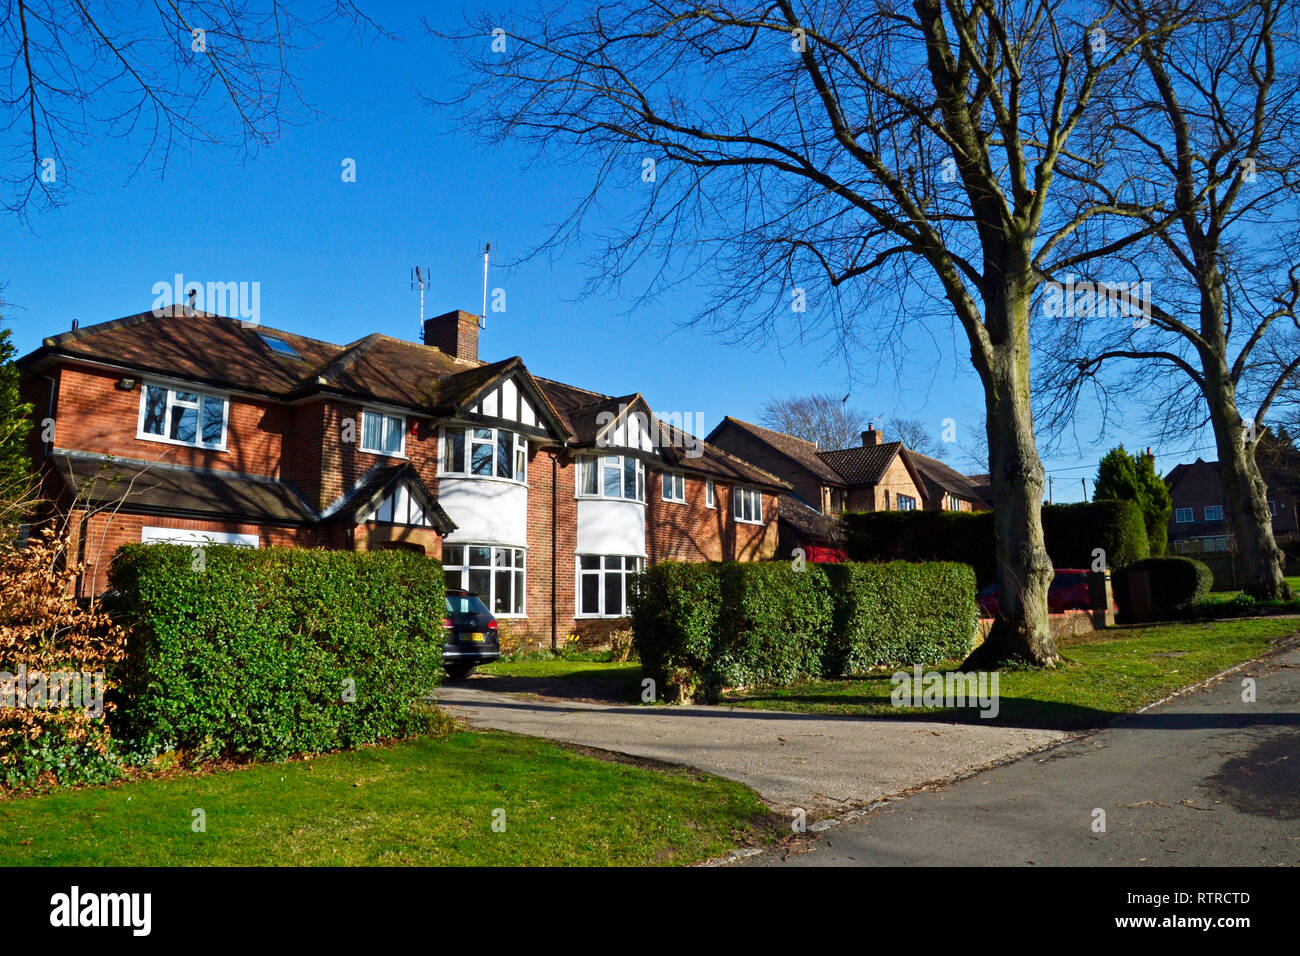 1930s houses with bay windows, on Manor Park Avenue, in Princes Risborough, Buckinghamshire, UK - Stock Image